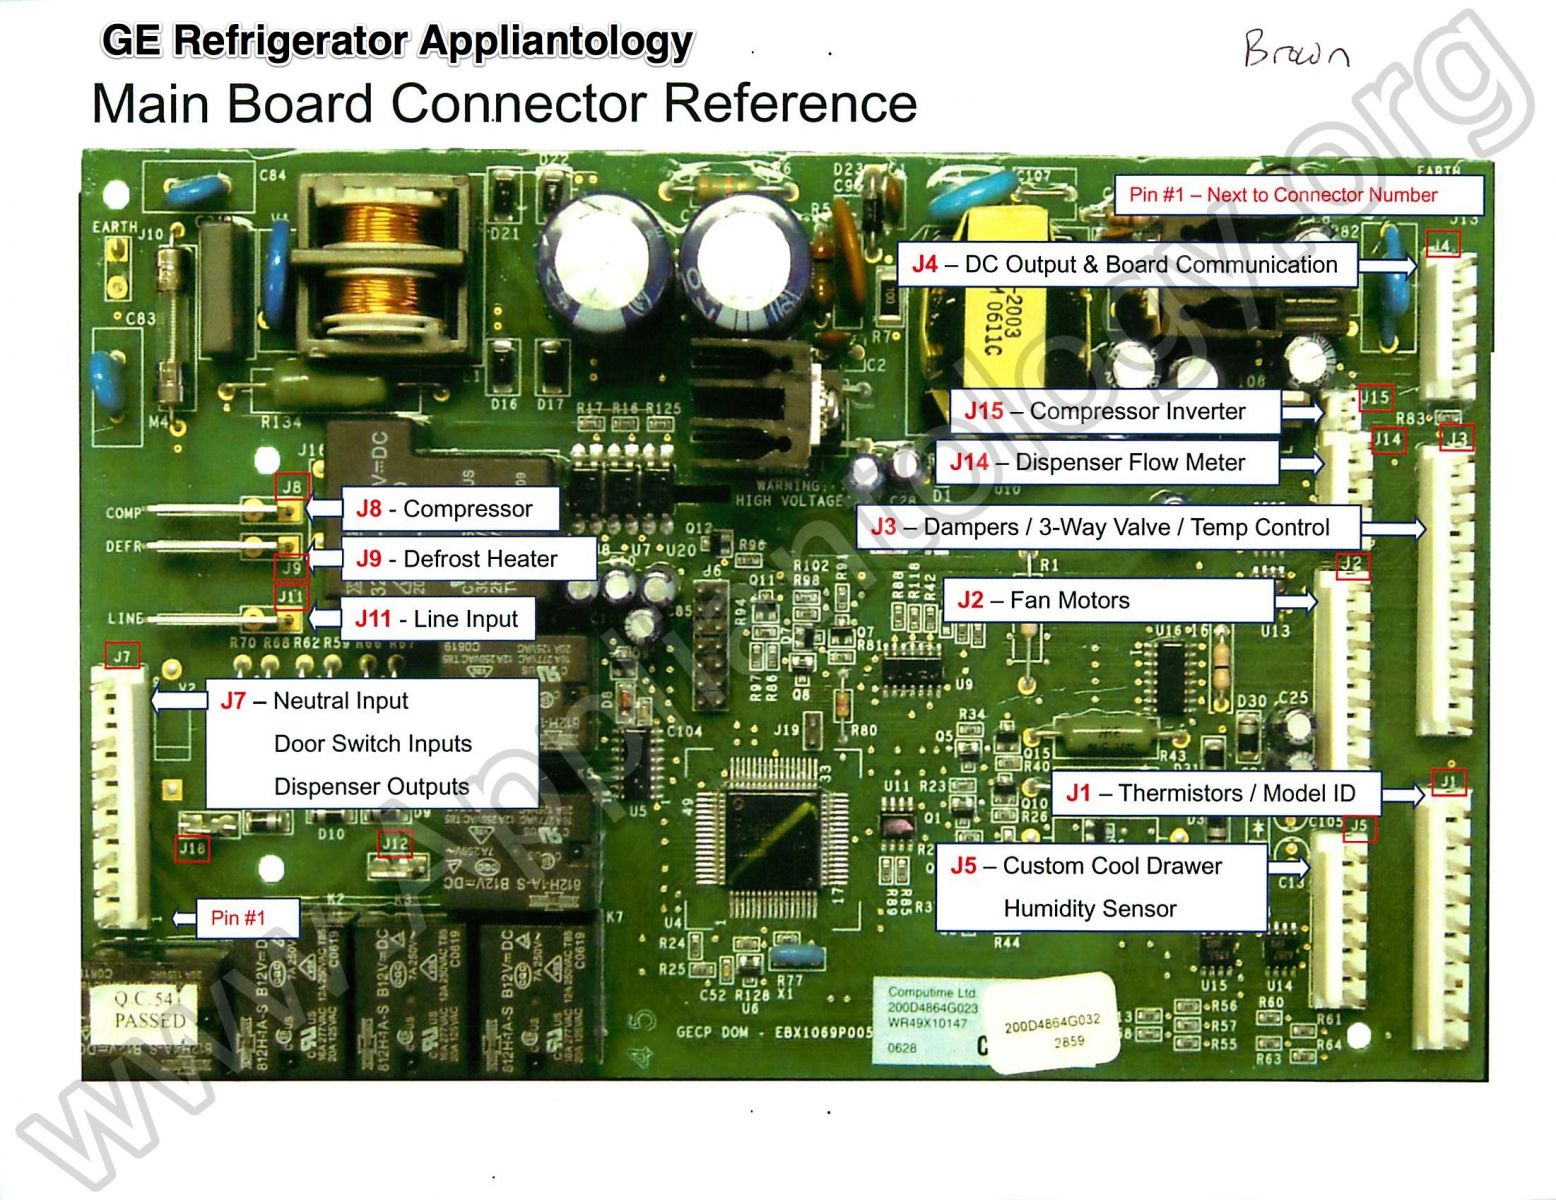 samsung refrigerator wiring diagram association in class example ge muthaboard - connector reference pictorial view the appliantology gallery ...